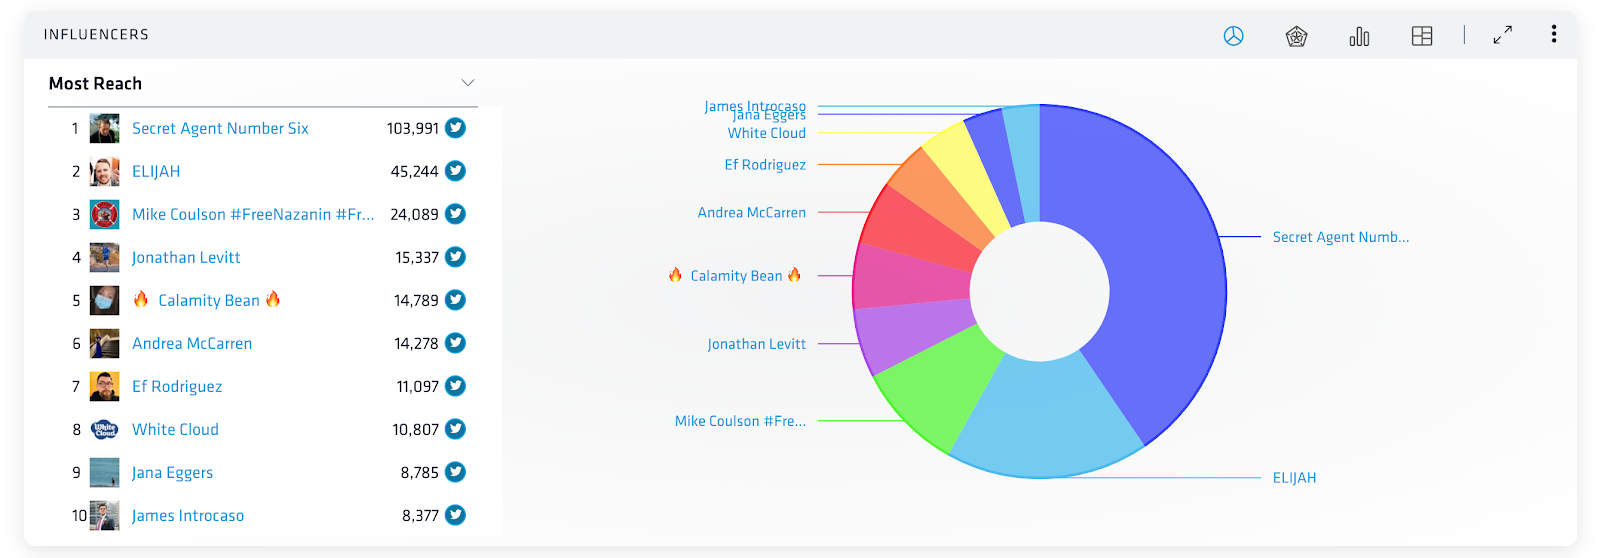 Nuvi's influencer dashboard shows the top ten influencers for Charmin in a 24 hour period. The left side lists the names from top to bottom, while the right shows a pie chart that visually represents how much reach each influencer has had compared to the others.